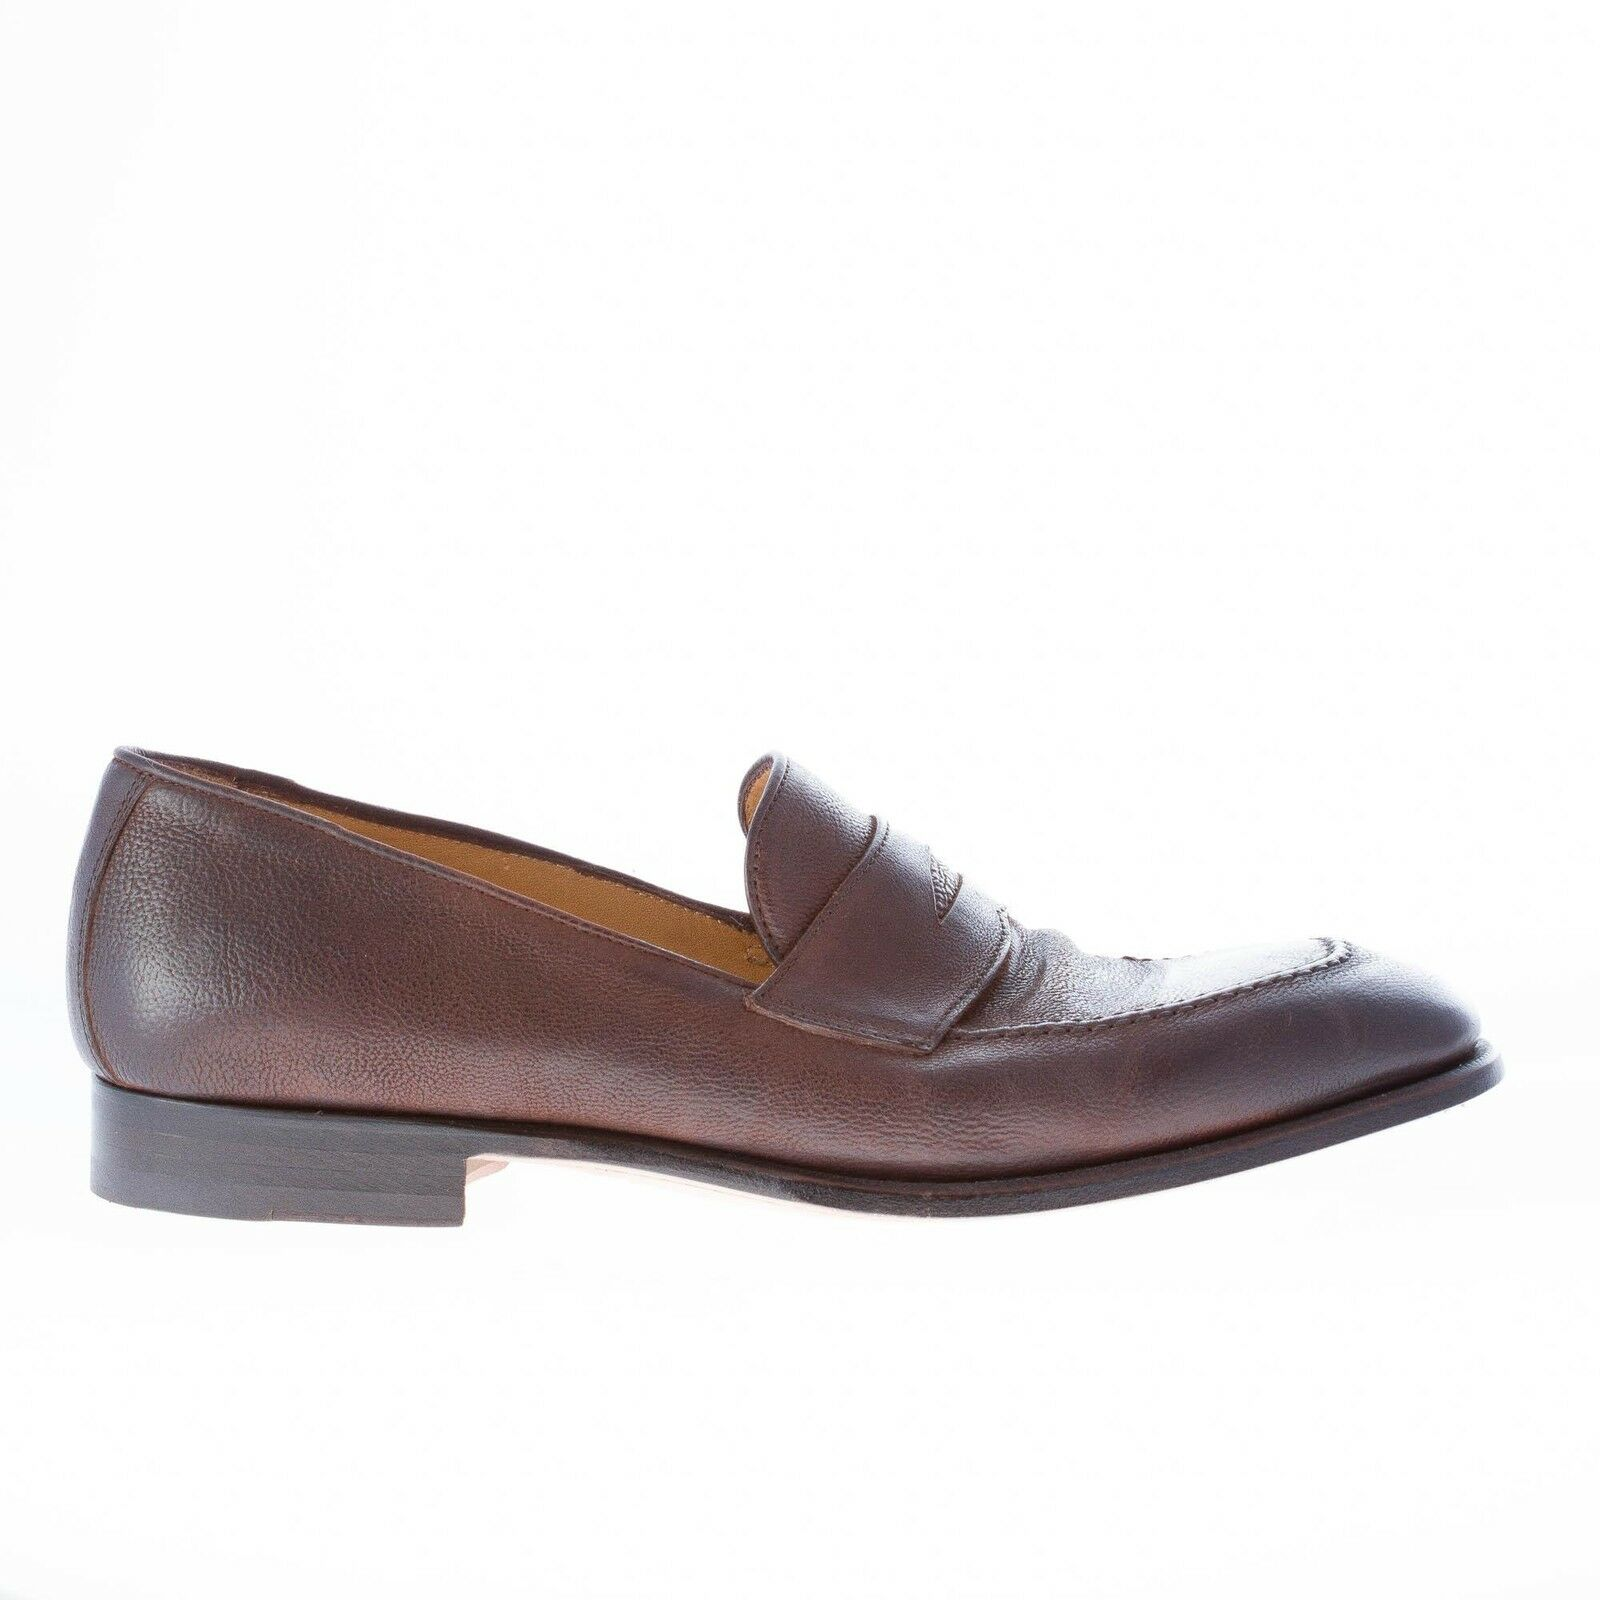 MIGLIORE men shoes made in  Dark brown antiqued leather penny loafer